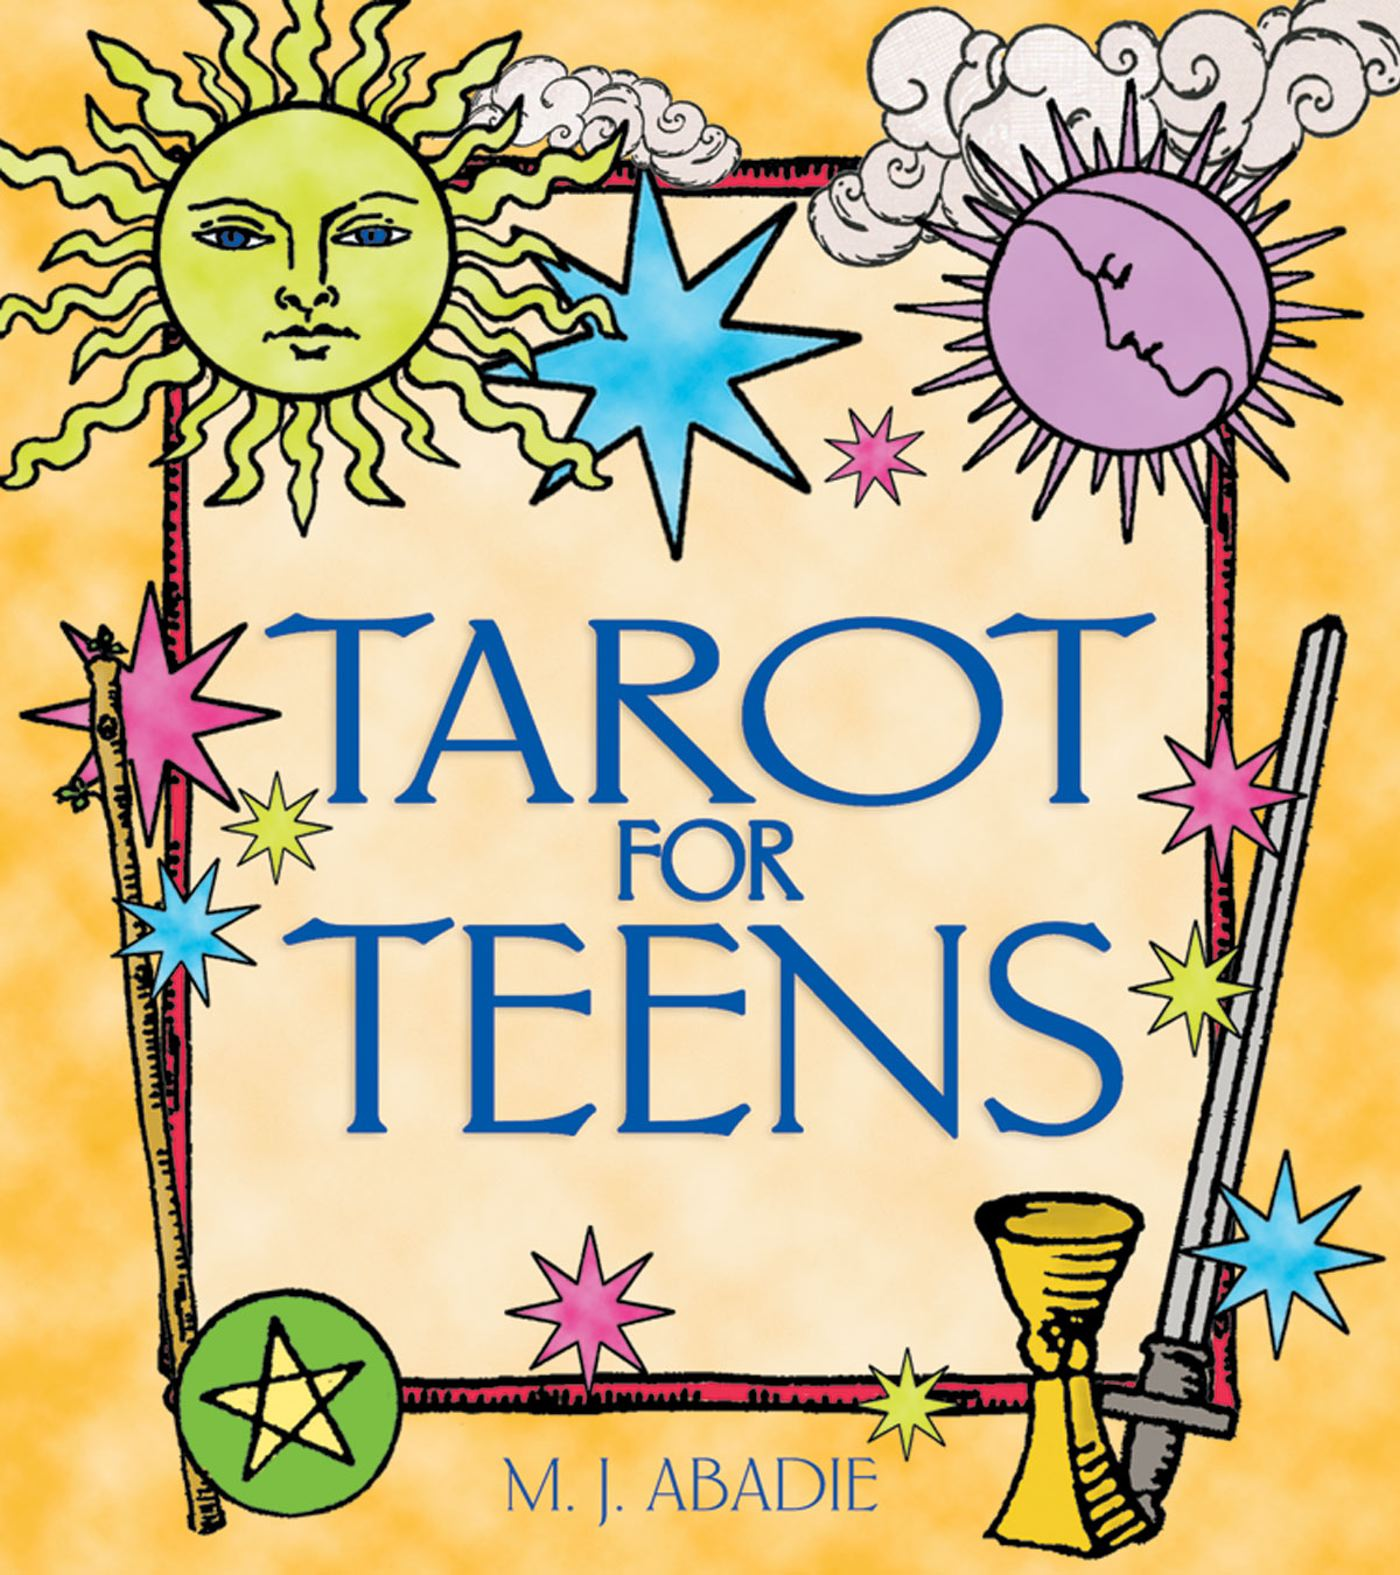 Tarot-for-teens-9780892819171_hr